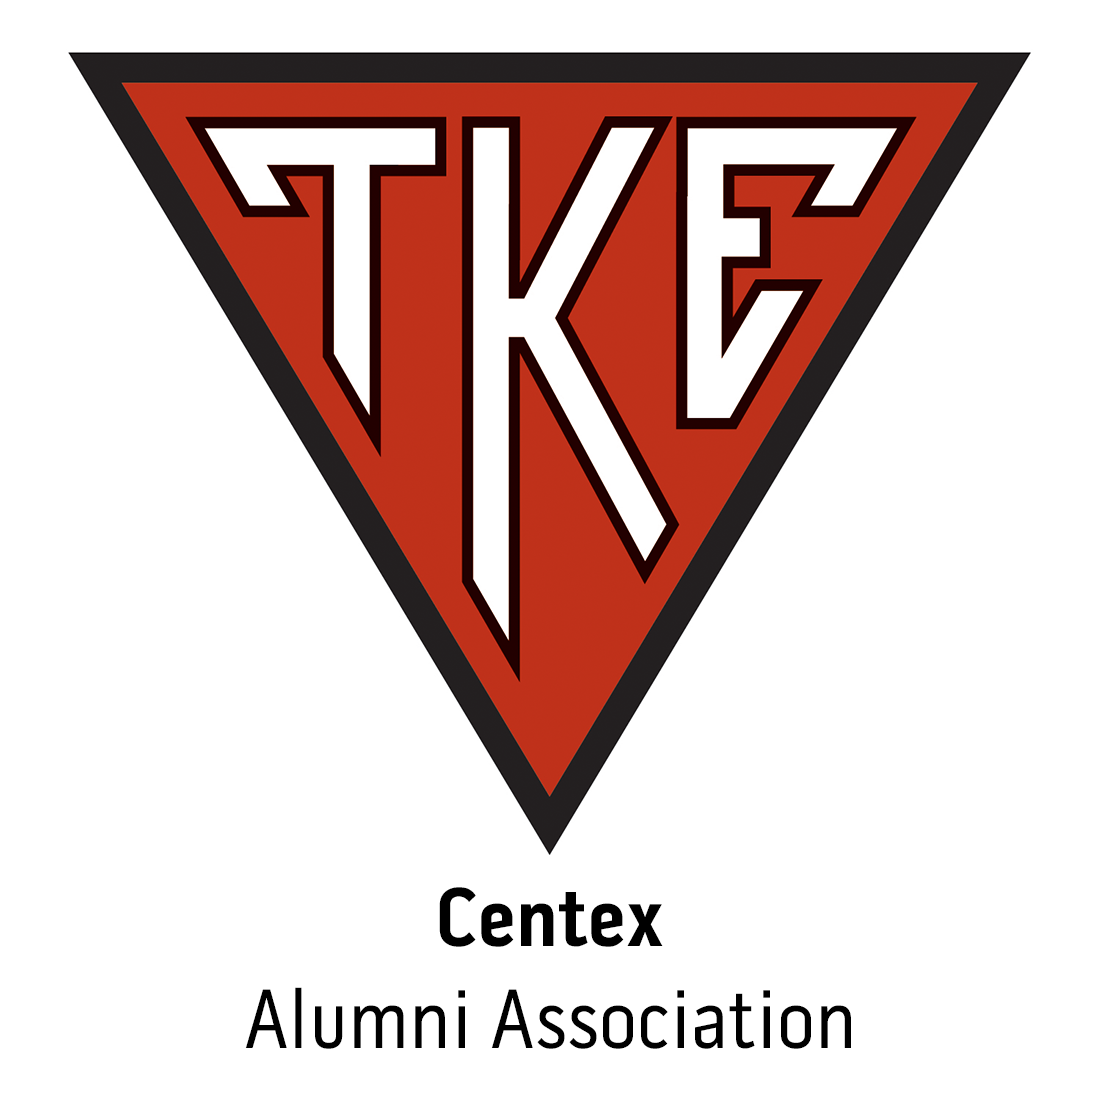 Centex Alumni Association at Central Texas